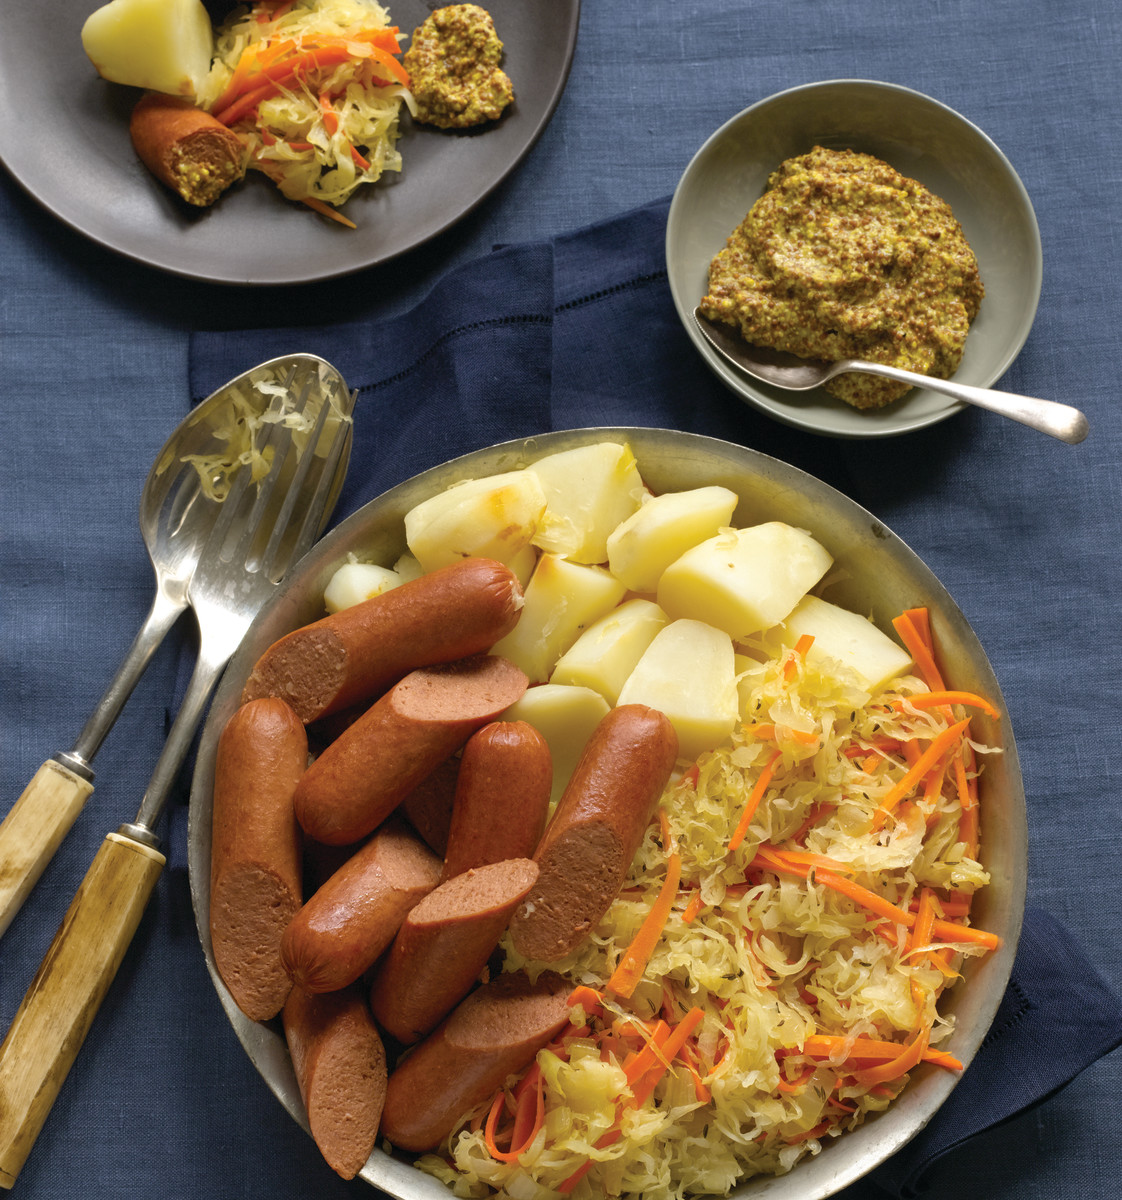 Knockwurst with Sauerkraut and Potatoes